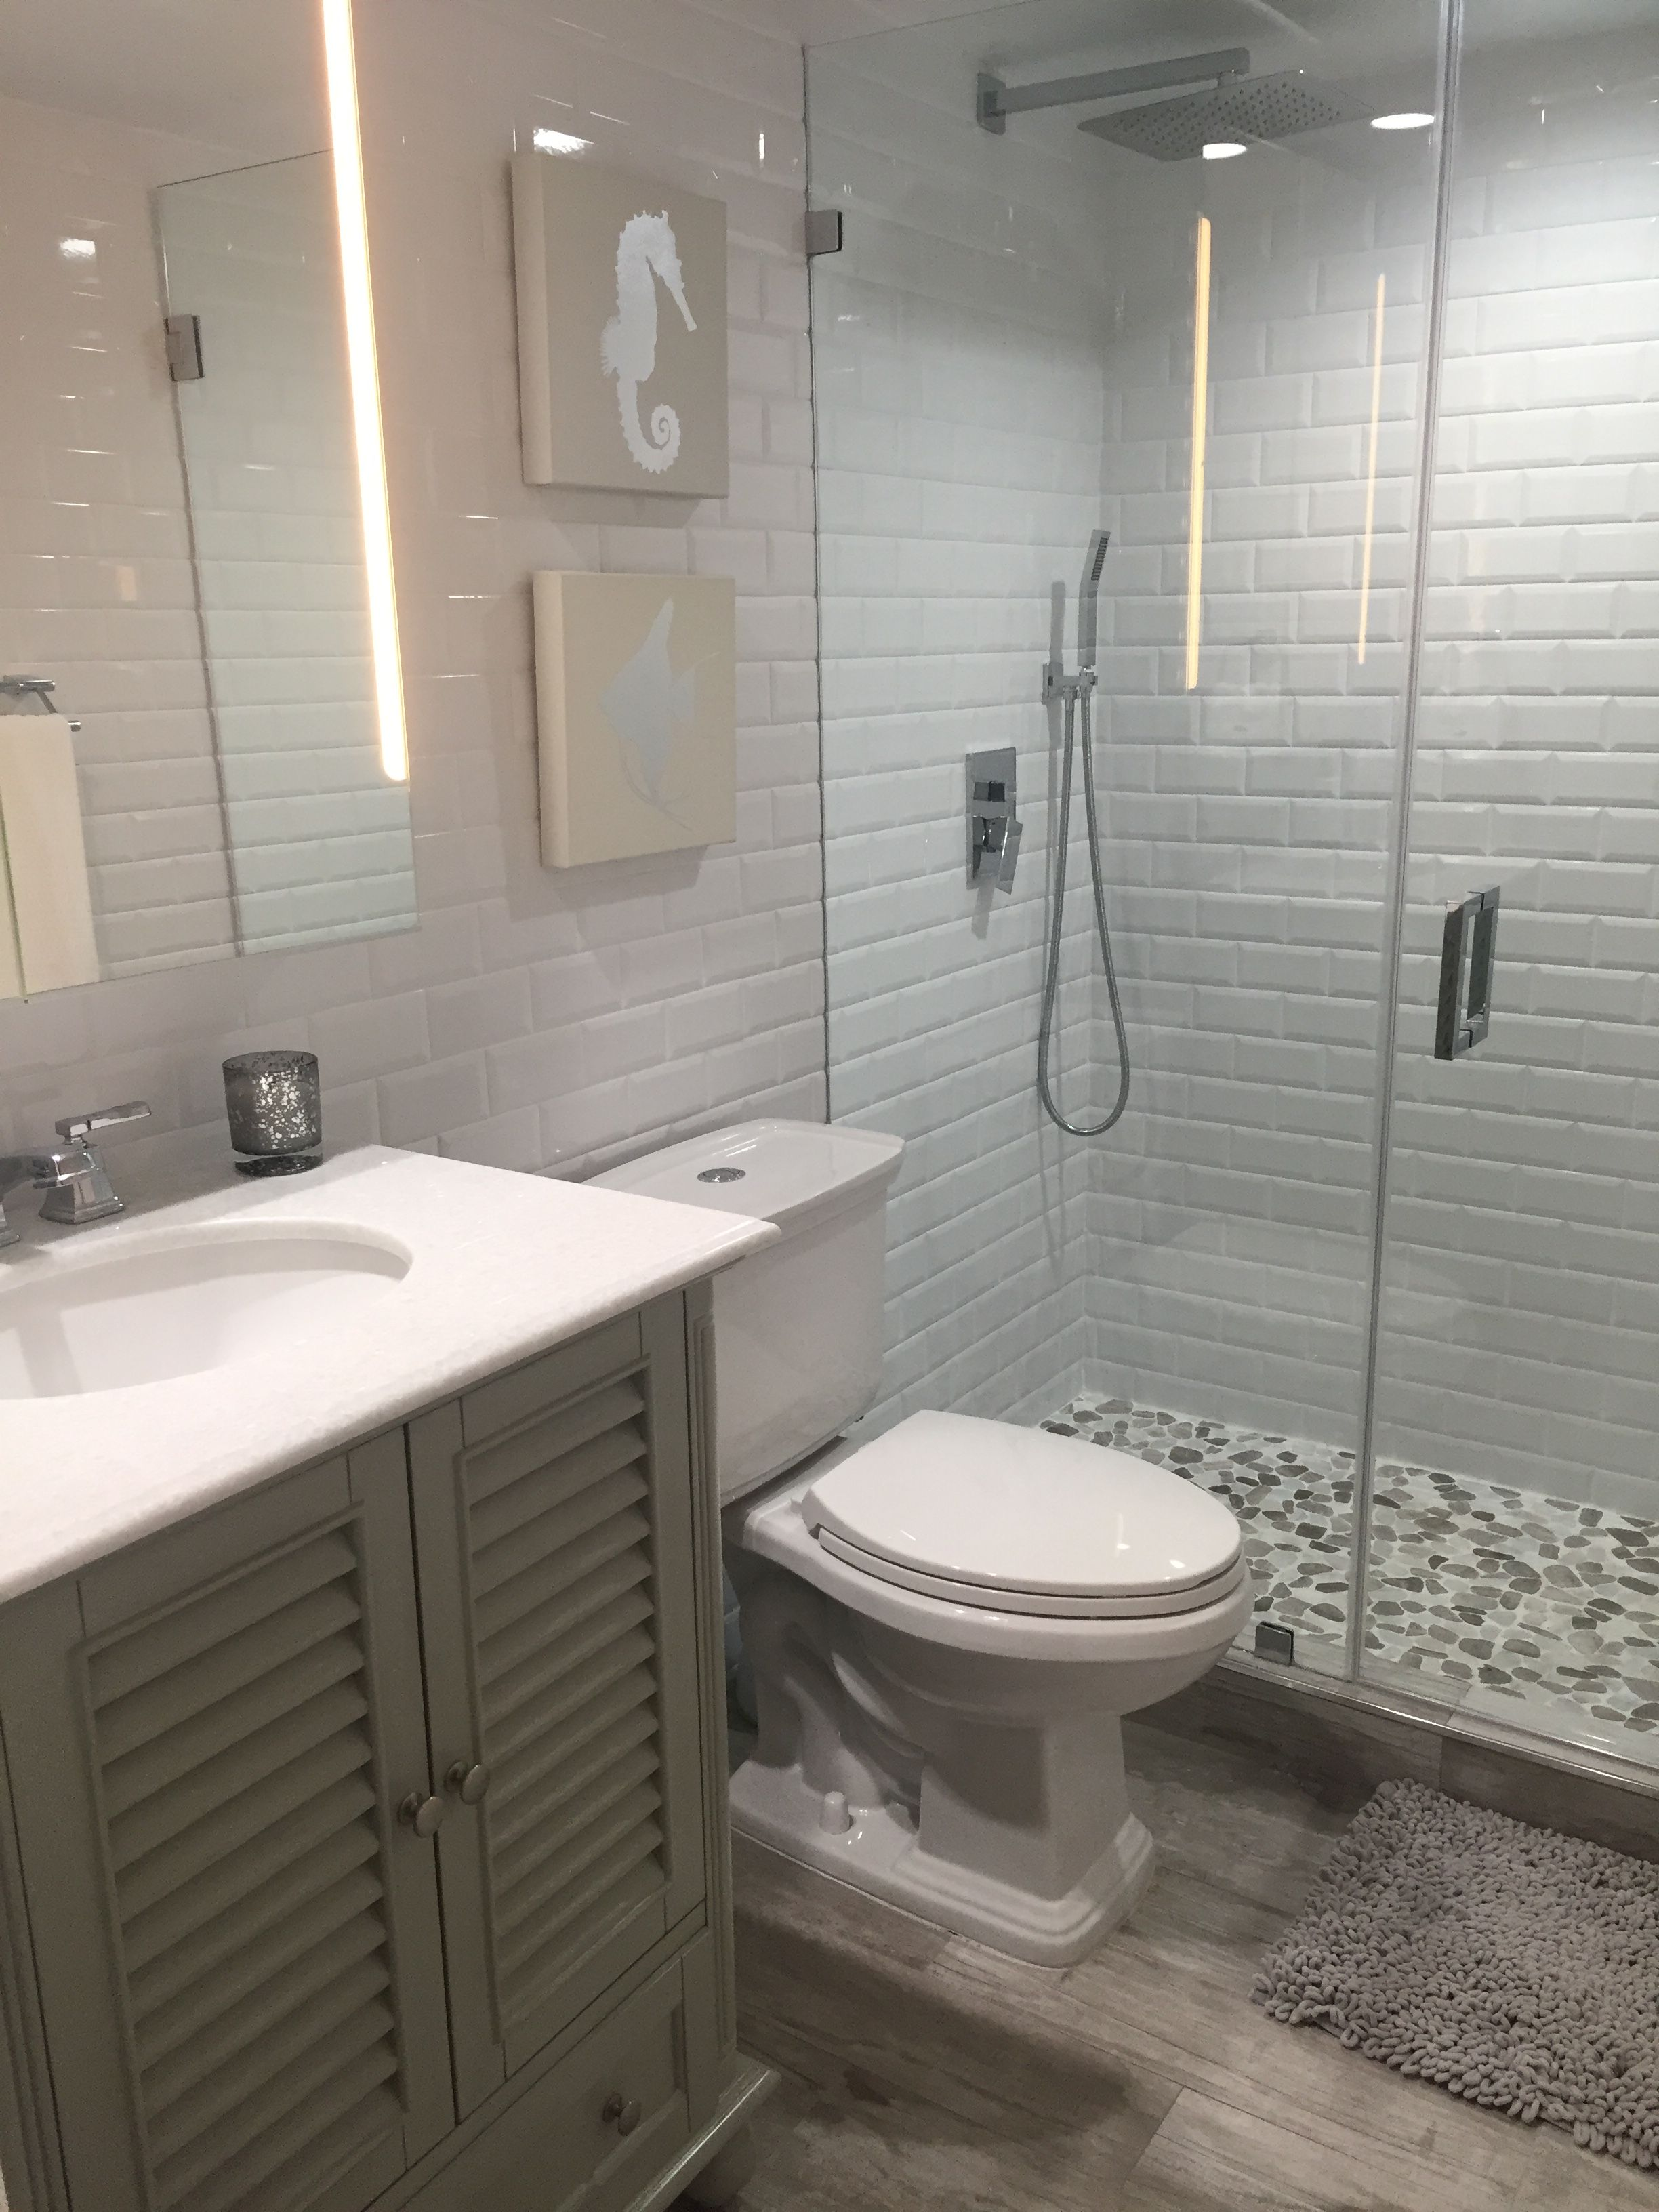 Toledo bathroom remodel contractors, Toledo bathroom remodeling, Toledo bathroom remodeling quote.